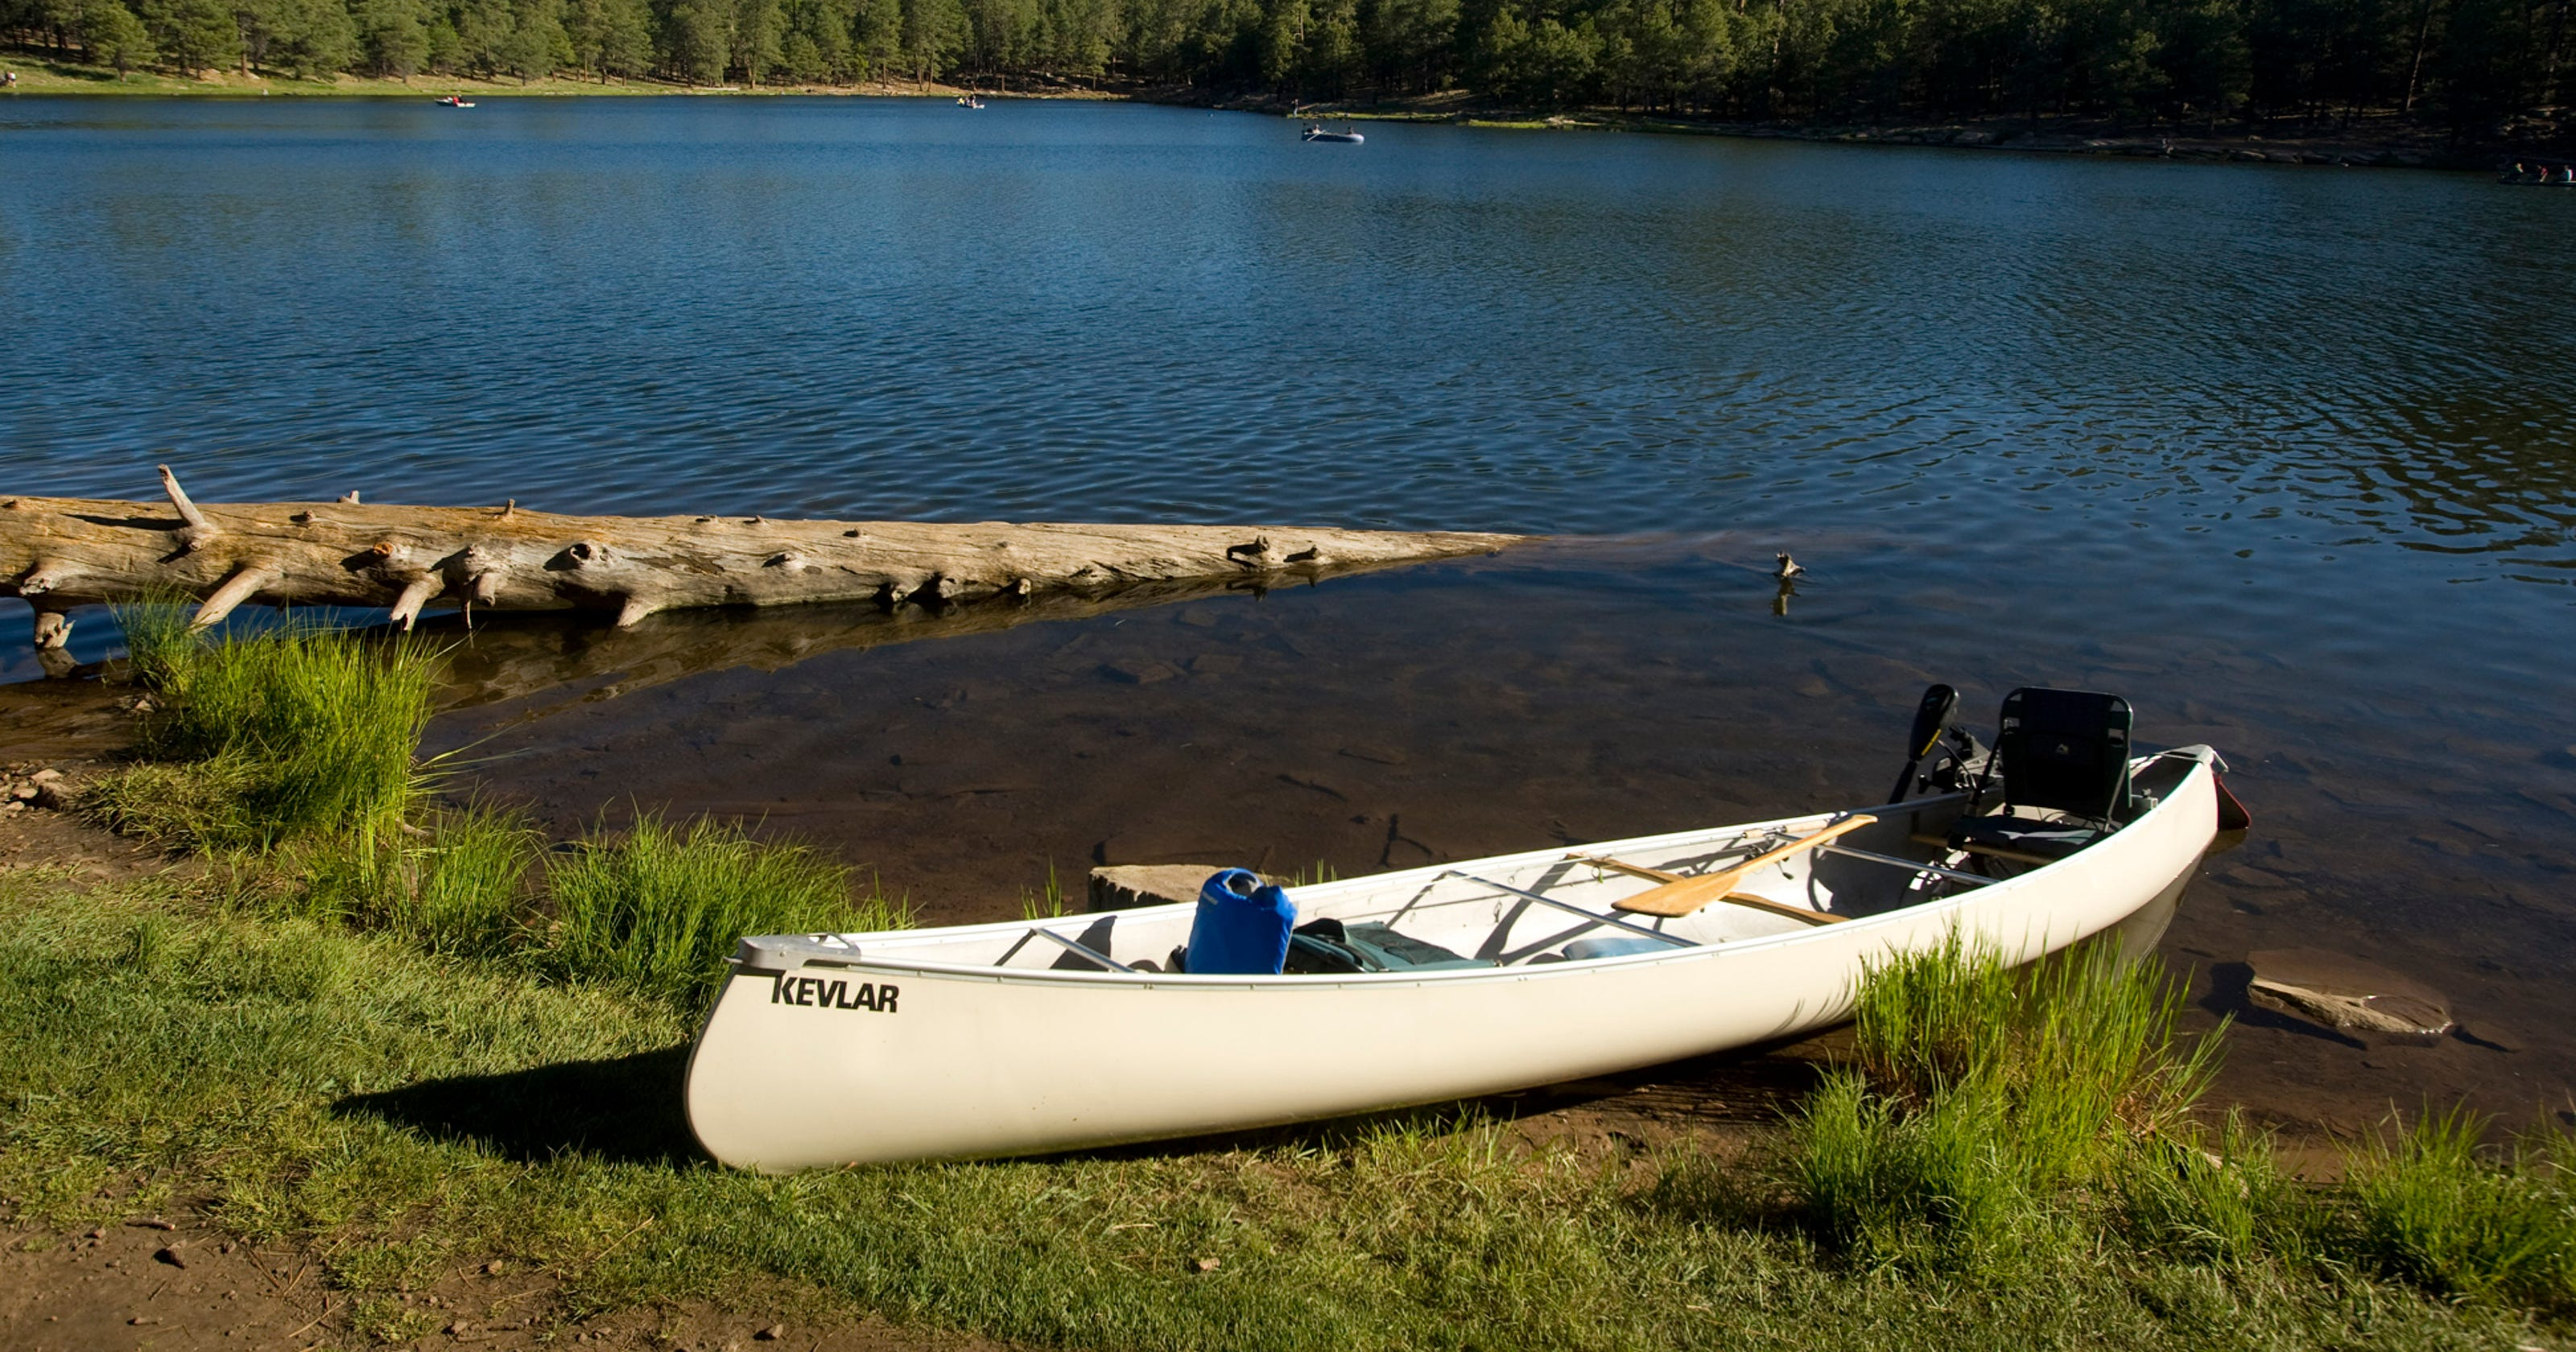 10 best things to do in the white mountains of eastern arizona publicscrutiny Image collections